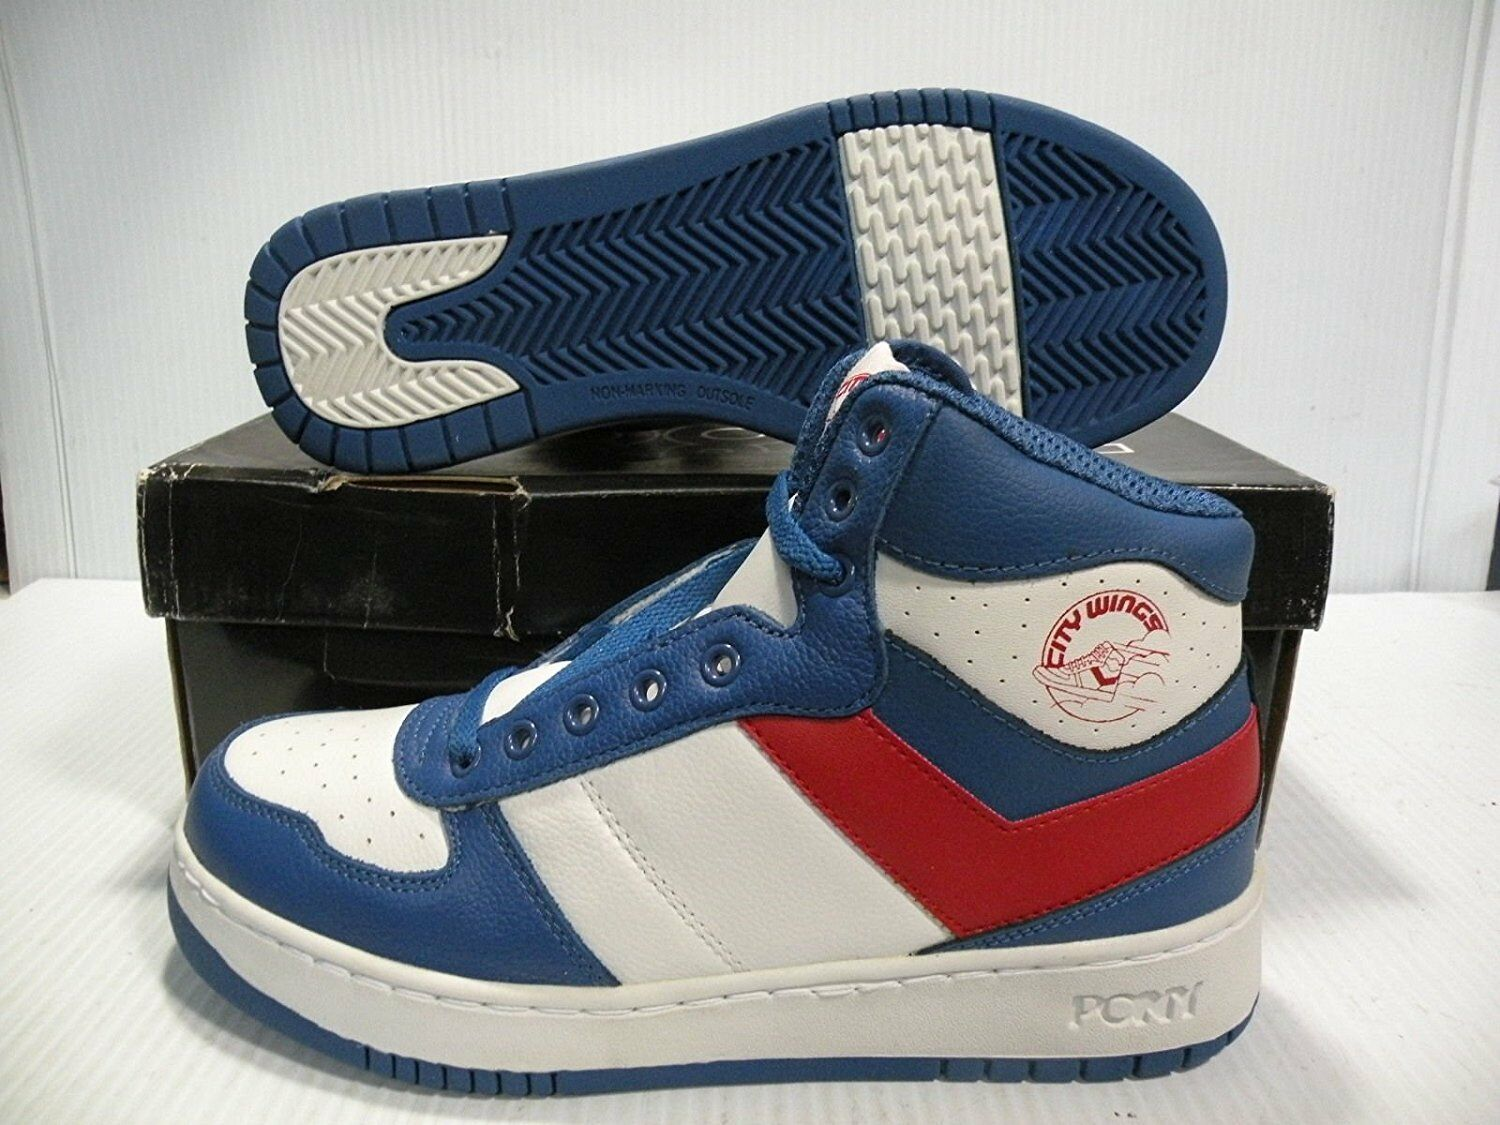 PONY CITY WINGS HI CHEVRON SNEAKERS uomo SHOES WHITE/BLUE/RED SIZE 8.5 NEW Scarpe classiche da uomo